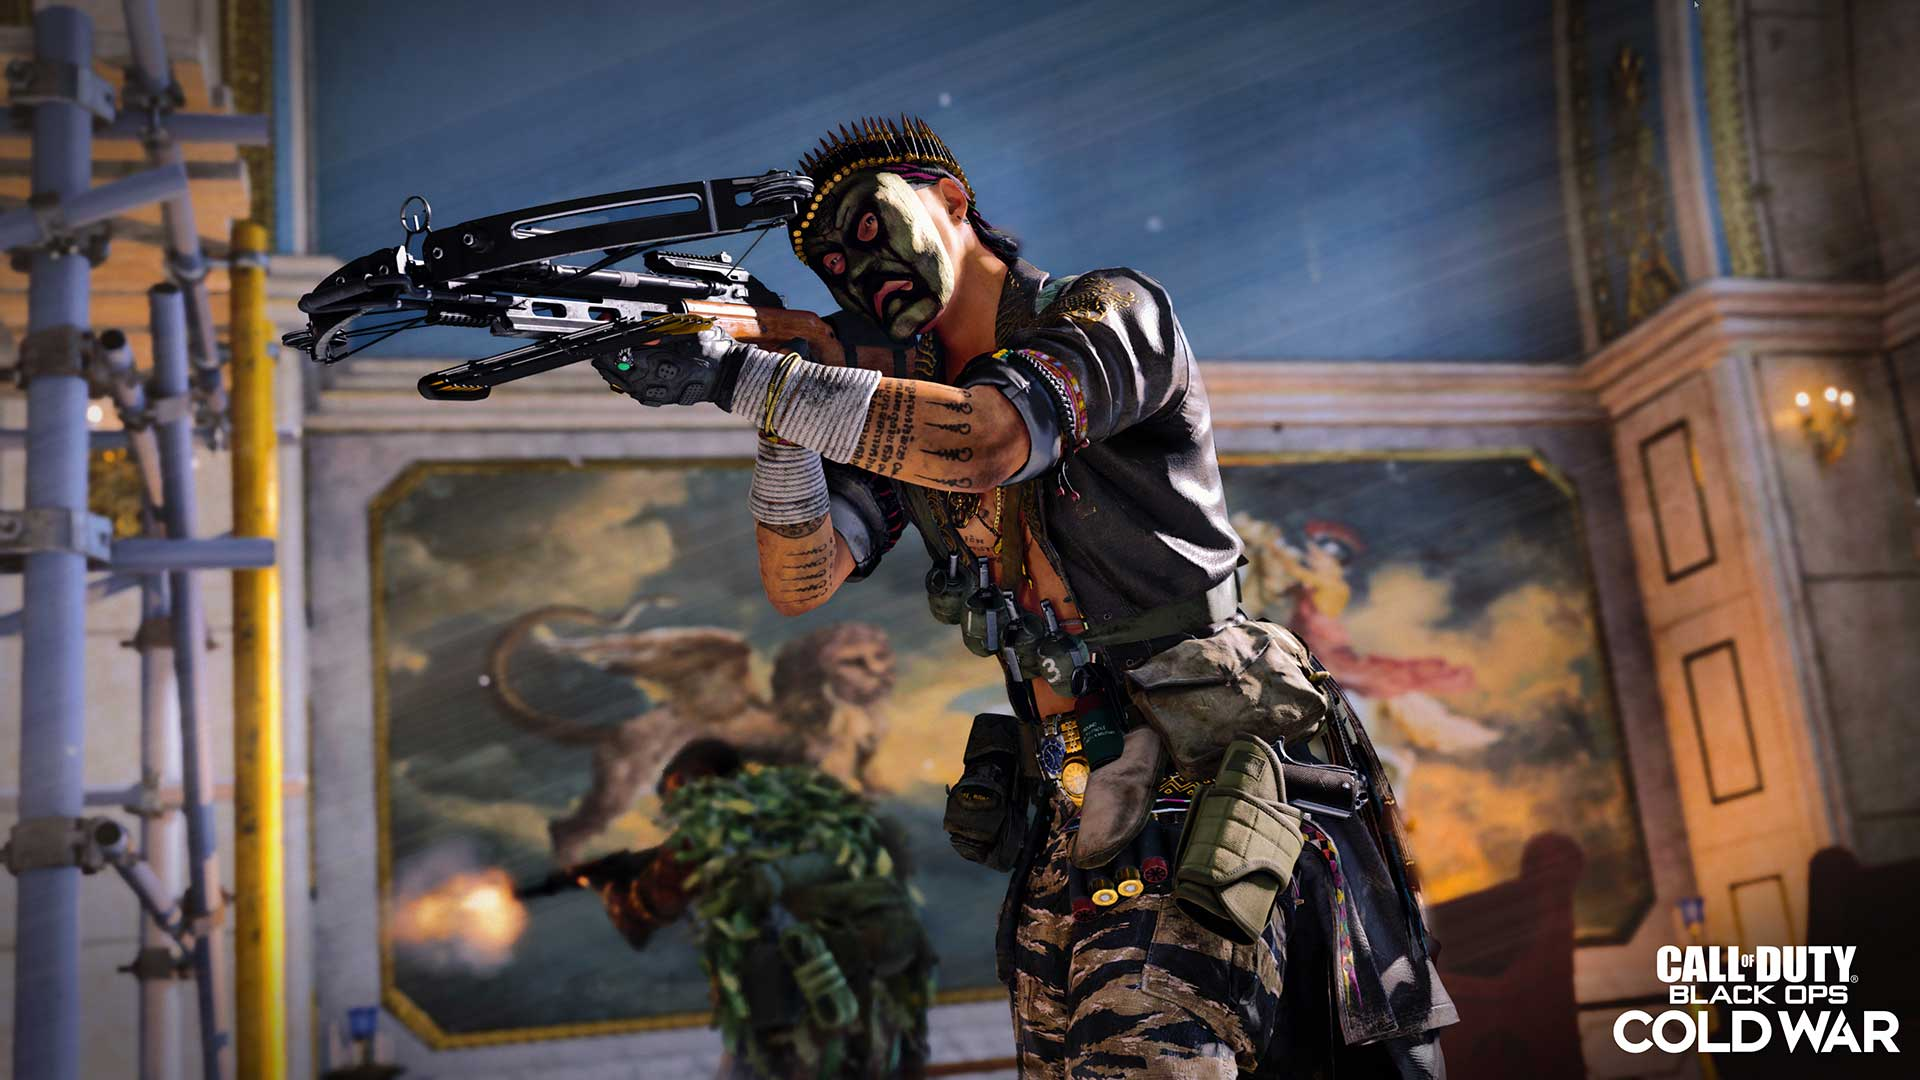 A Call of Duty: Black Ops Cold War player takes on enemies with the R1 crossbow